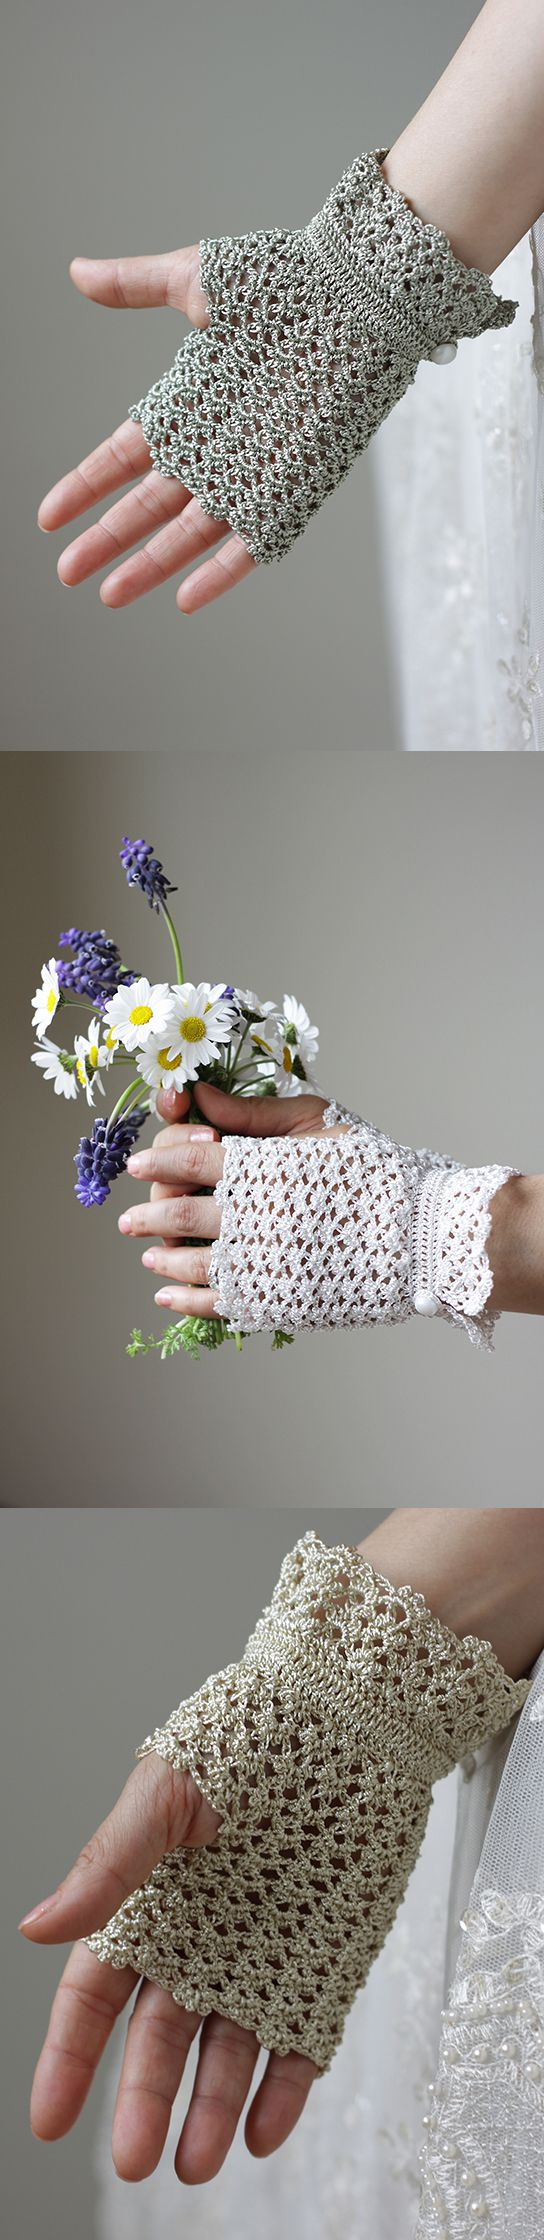 Lace gloves, useful for weddings.